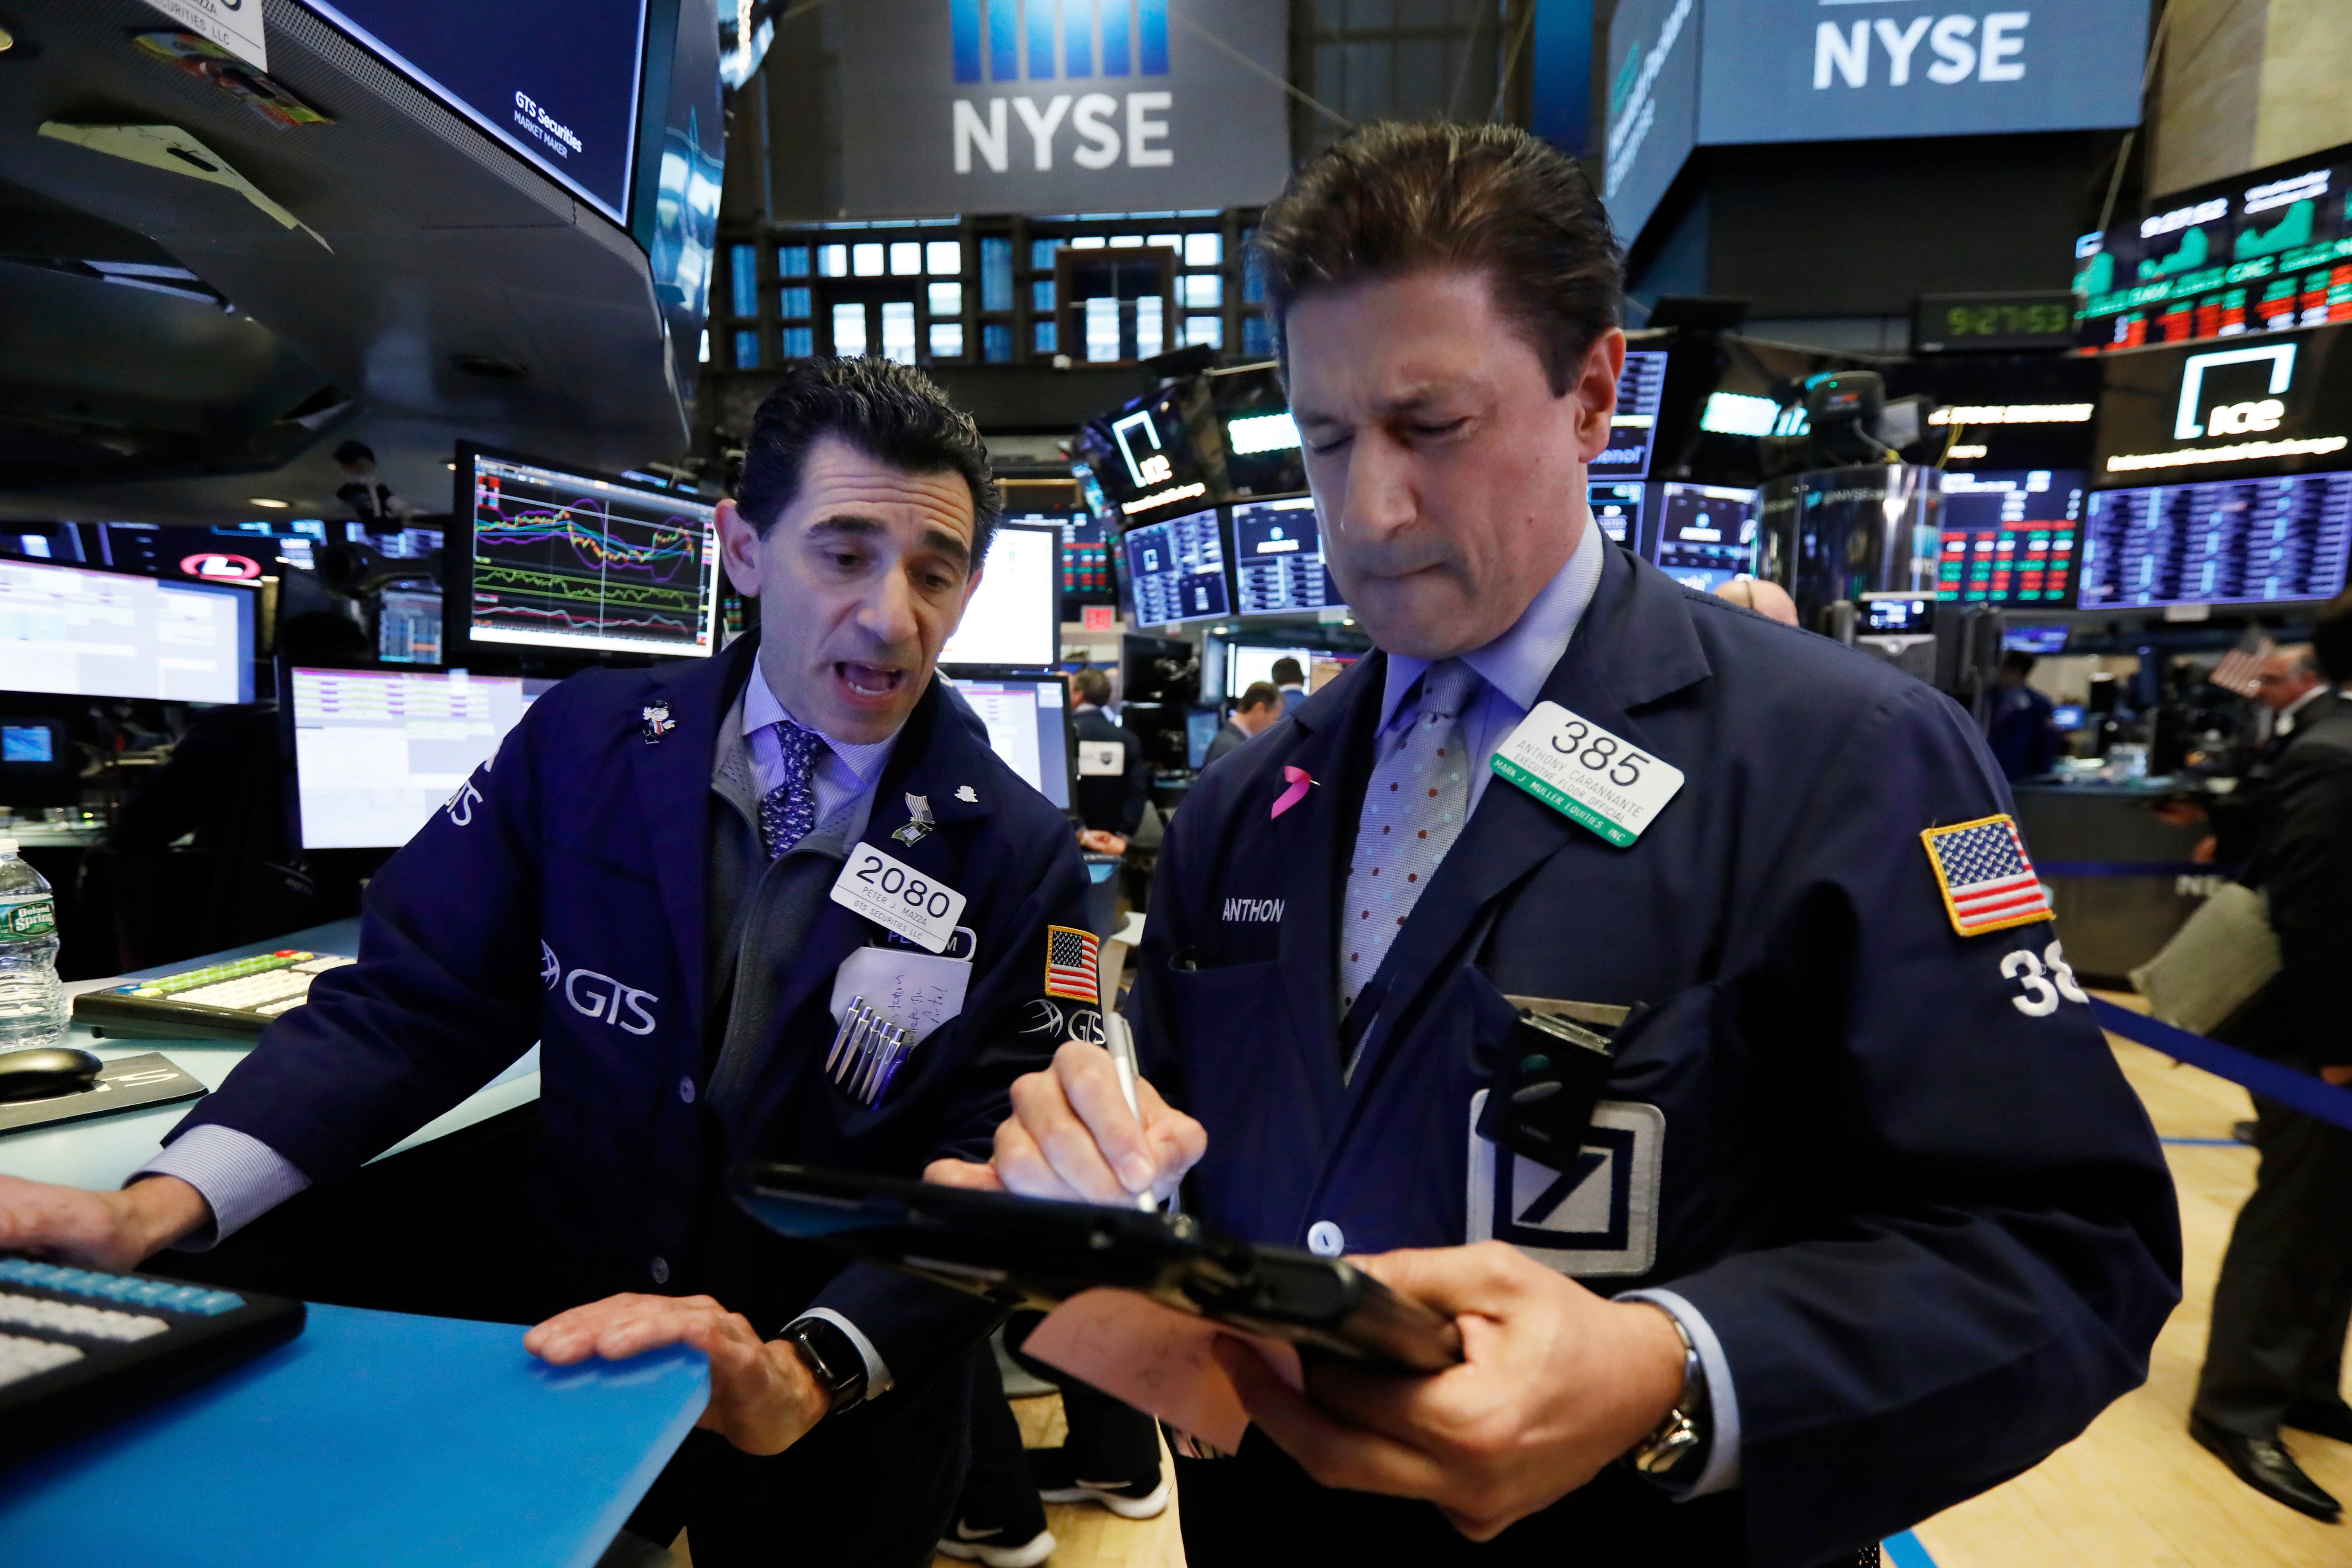 Specialist Peter Mazza, left, and trader Anthony Carannante work on the floor of the New York Stock Exchange on  Wednesday, Oct. 24, 2018. The Dow dropped more than 600 points, and the market now has given back all of this year's gains.